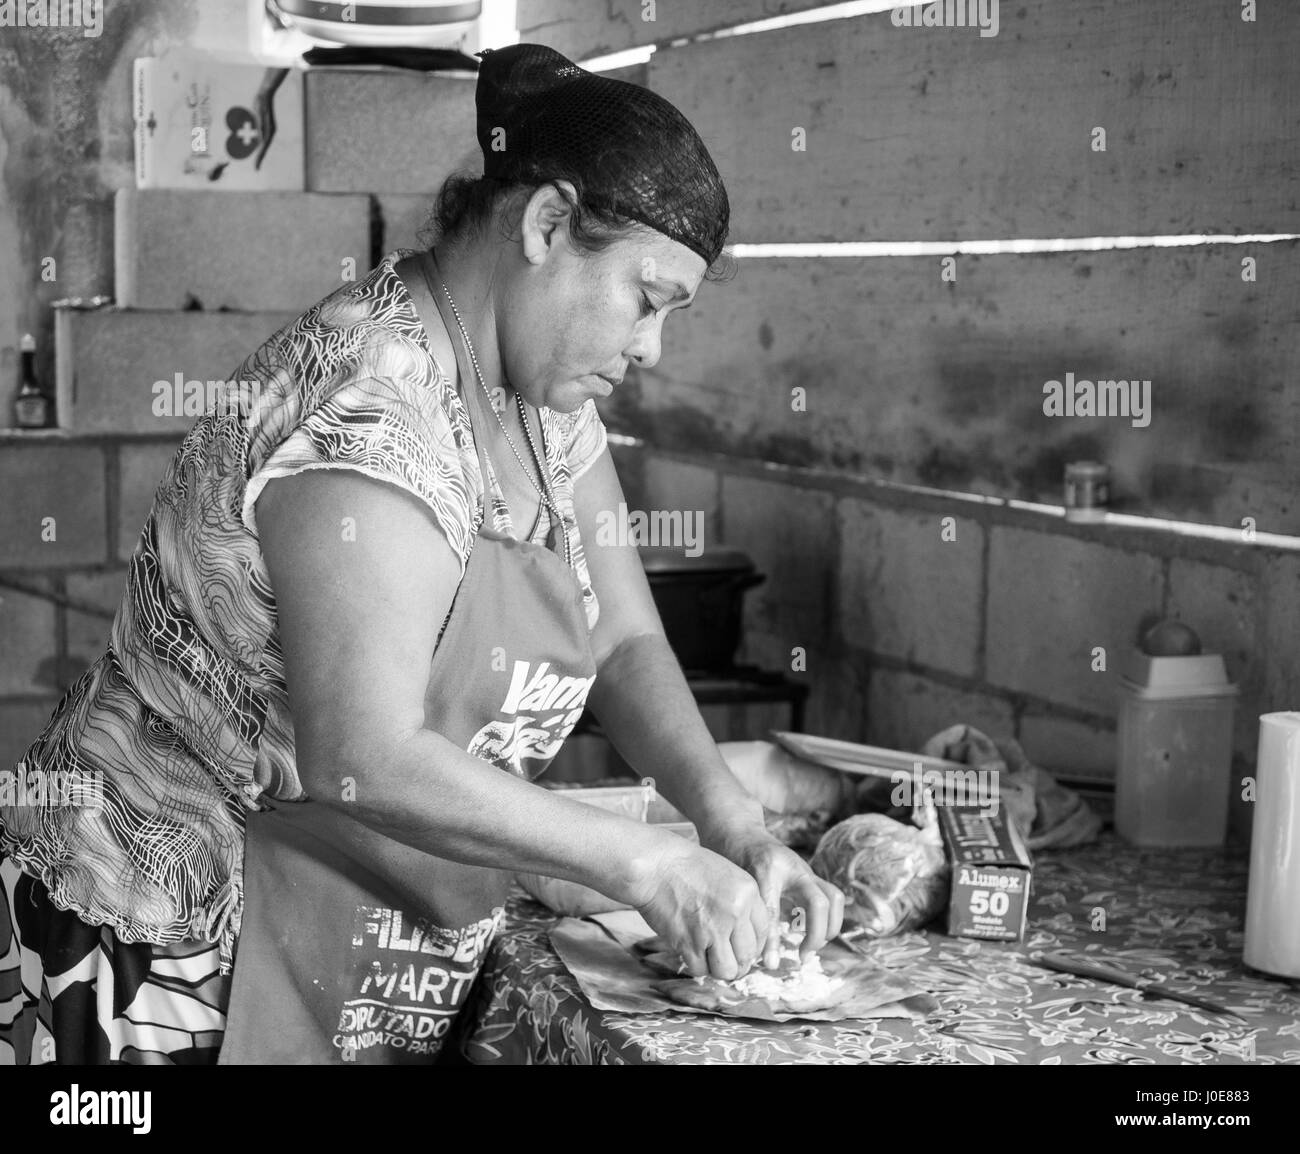 Lunch Preparation monochrome. A woman prepares a street lunch by filling a tortilla with salad and chicken in a - Stock Image